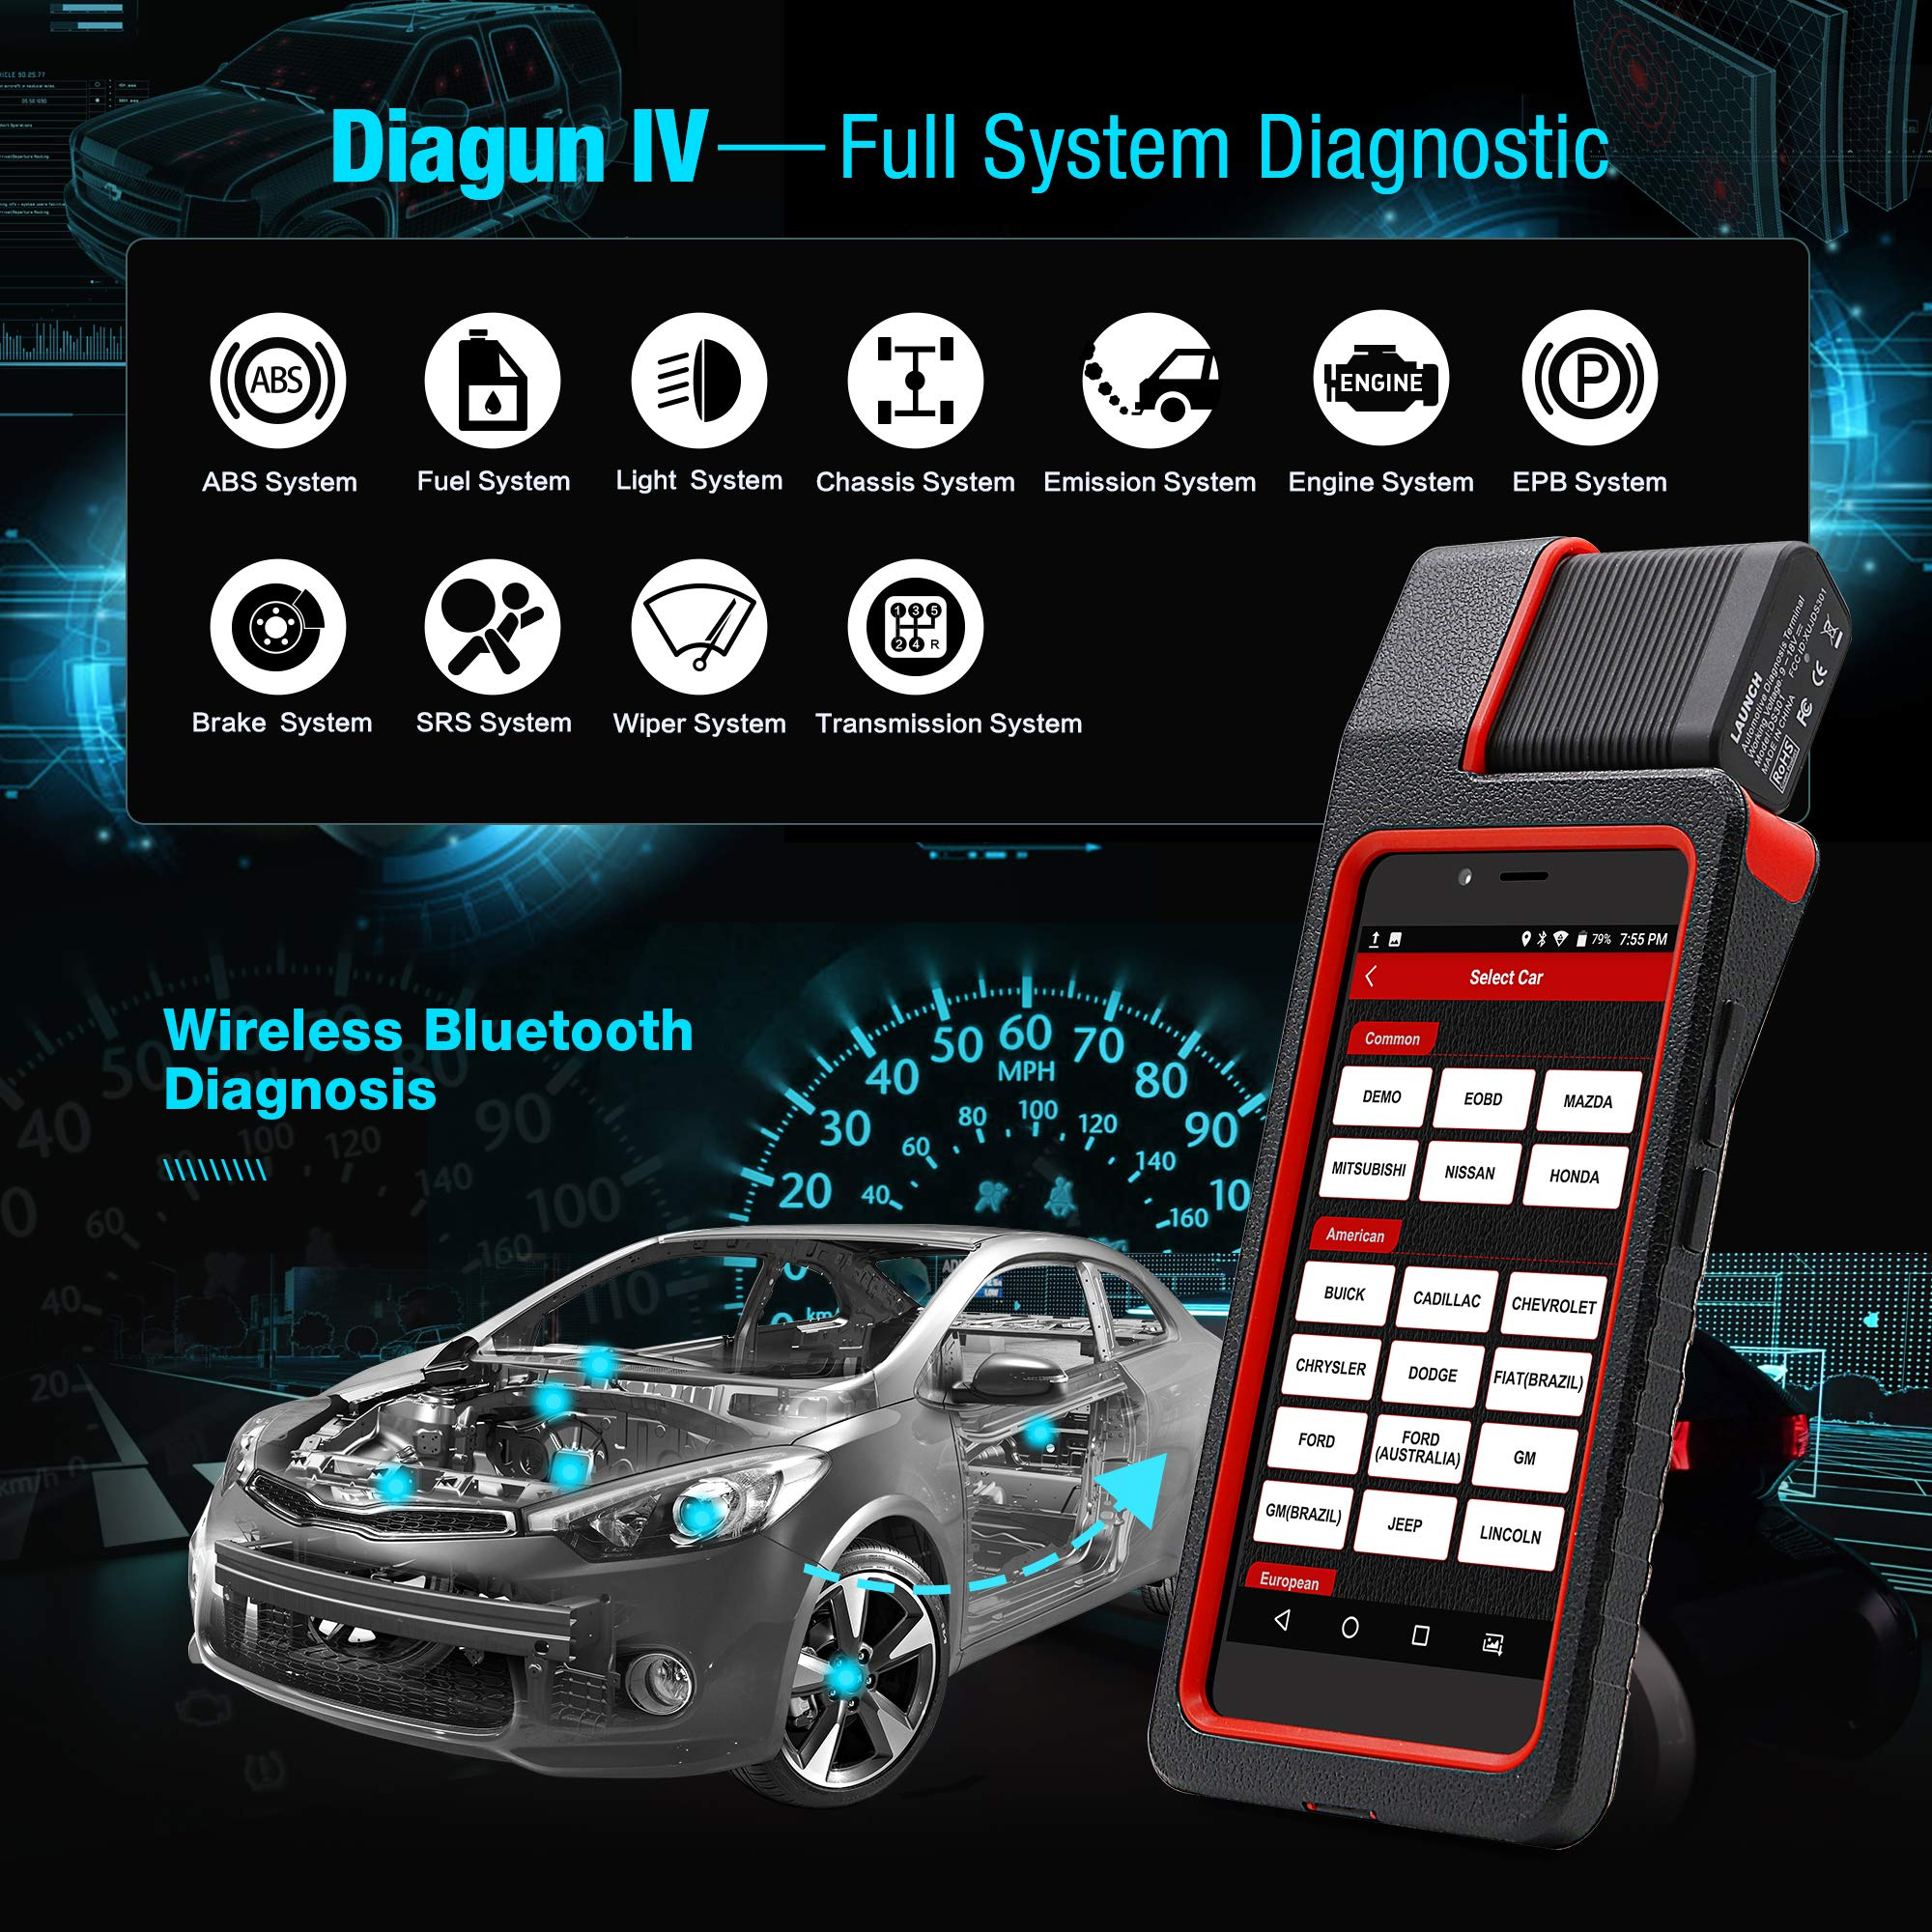 Launch X431 DIAGUN IV Bi-directional Automotive Diagnostic Tool OBD2 Scanner Code Reader with Wifi & Bluetooth Covering 108 Vehicle Makes, 2 Years Free Update by LAUNCH (Image #3)